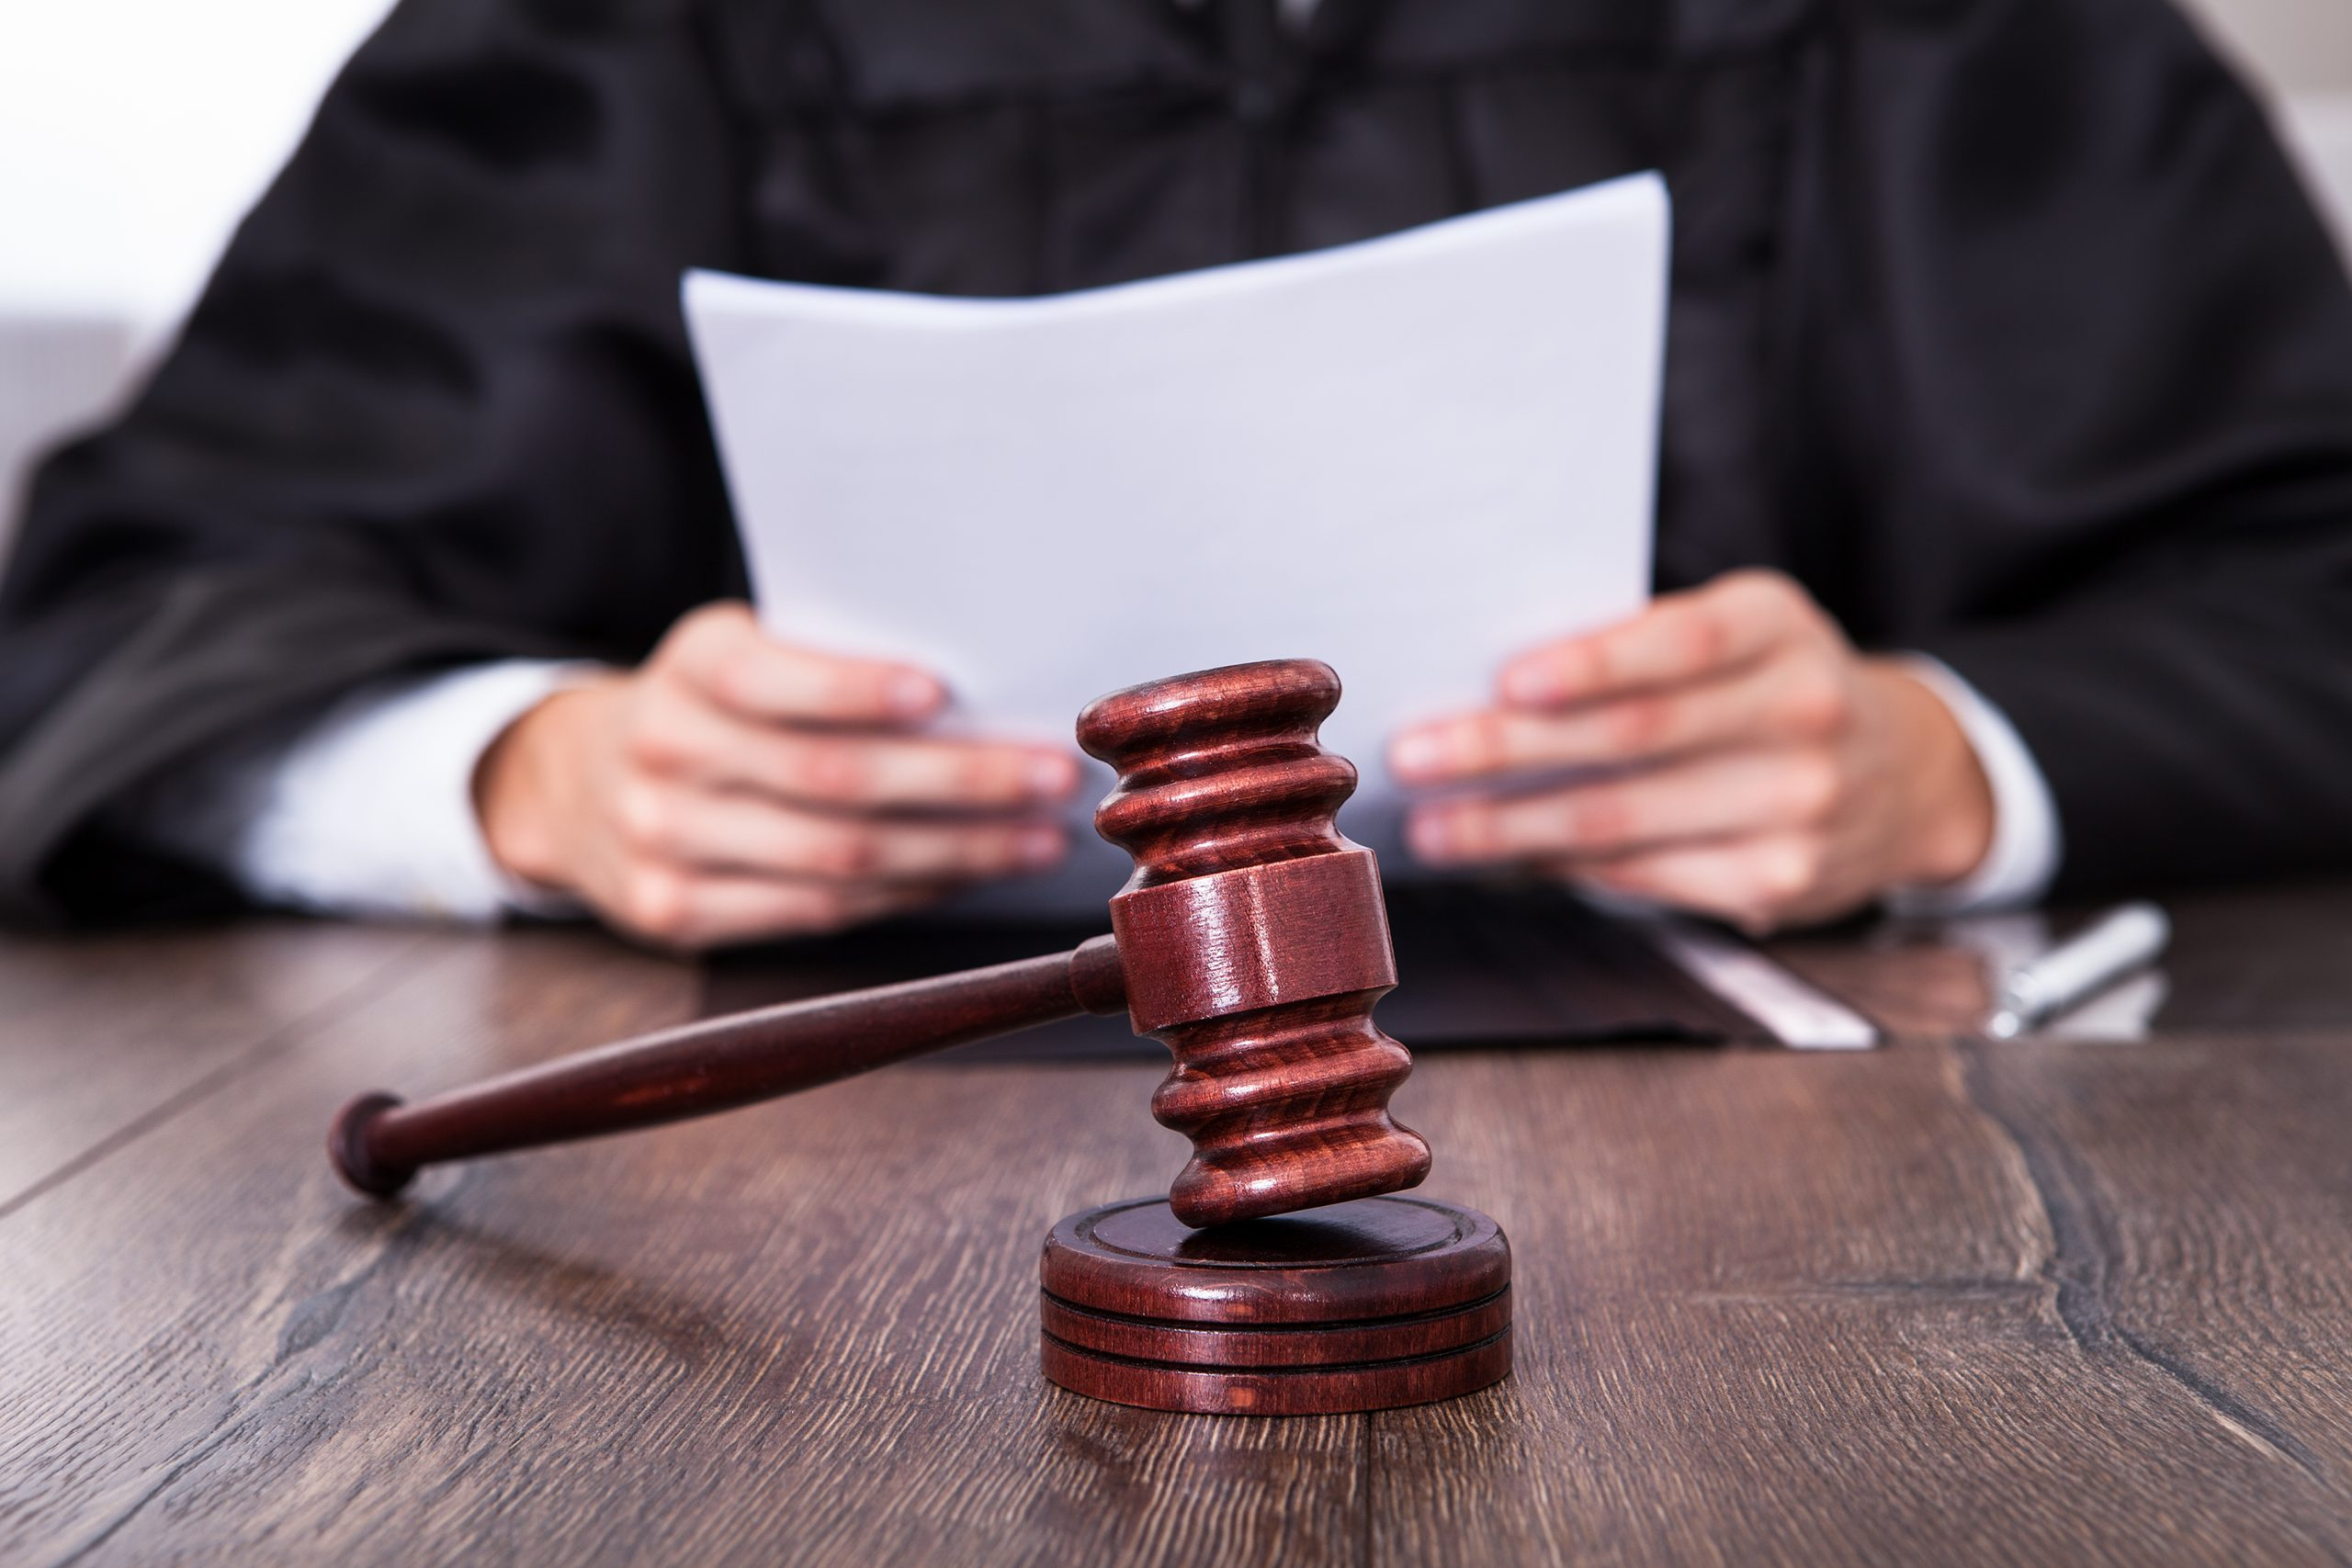 Relief for forestry families after successful Federal Court appeal